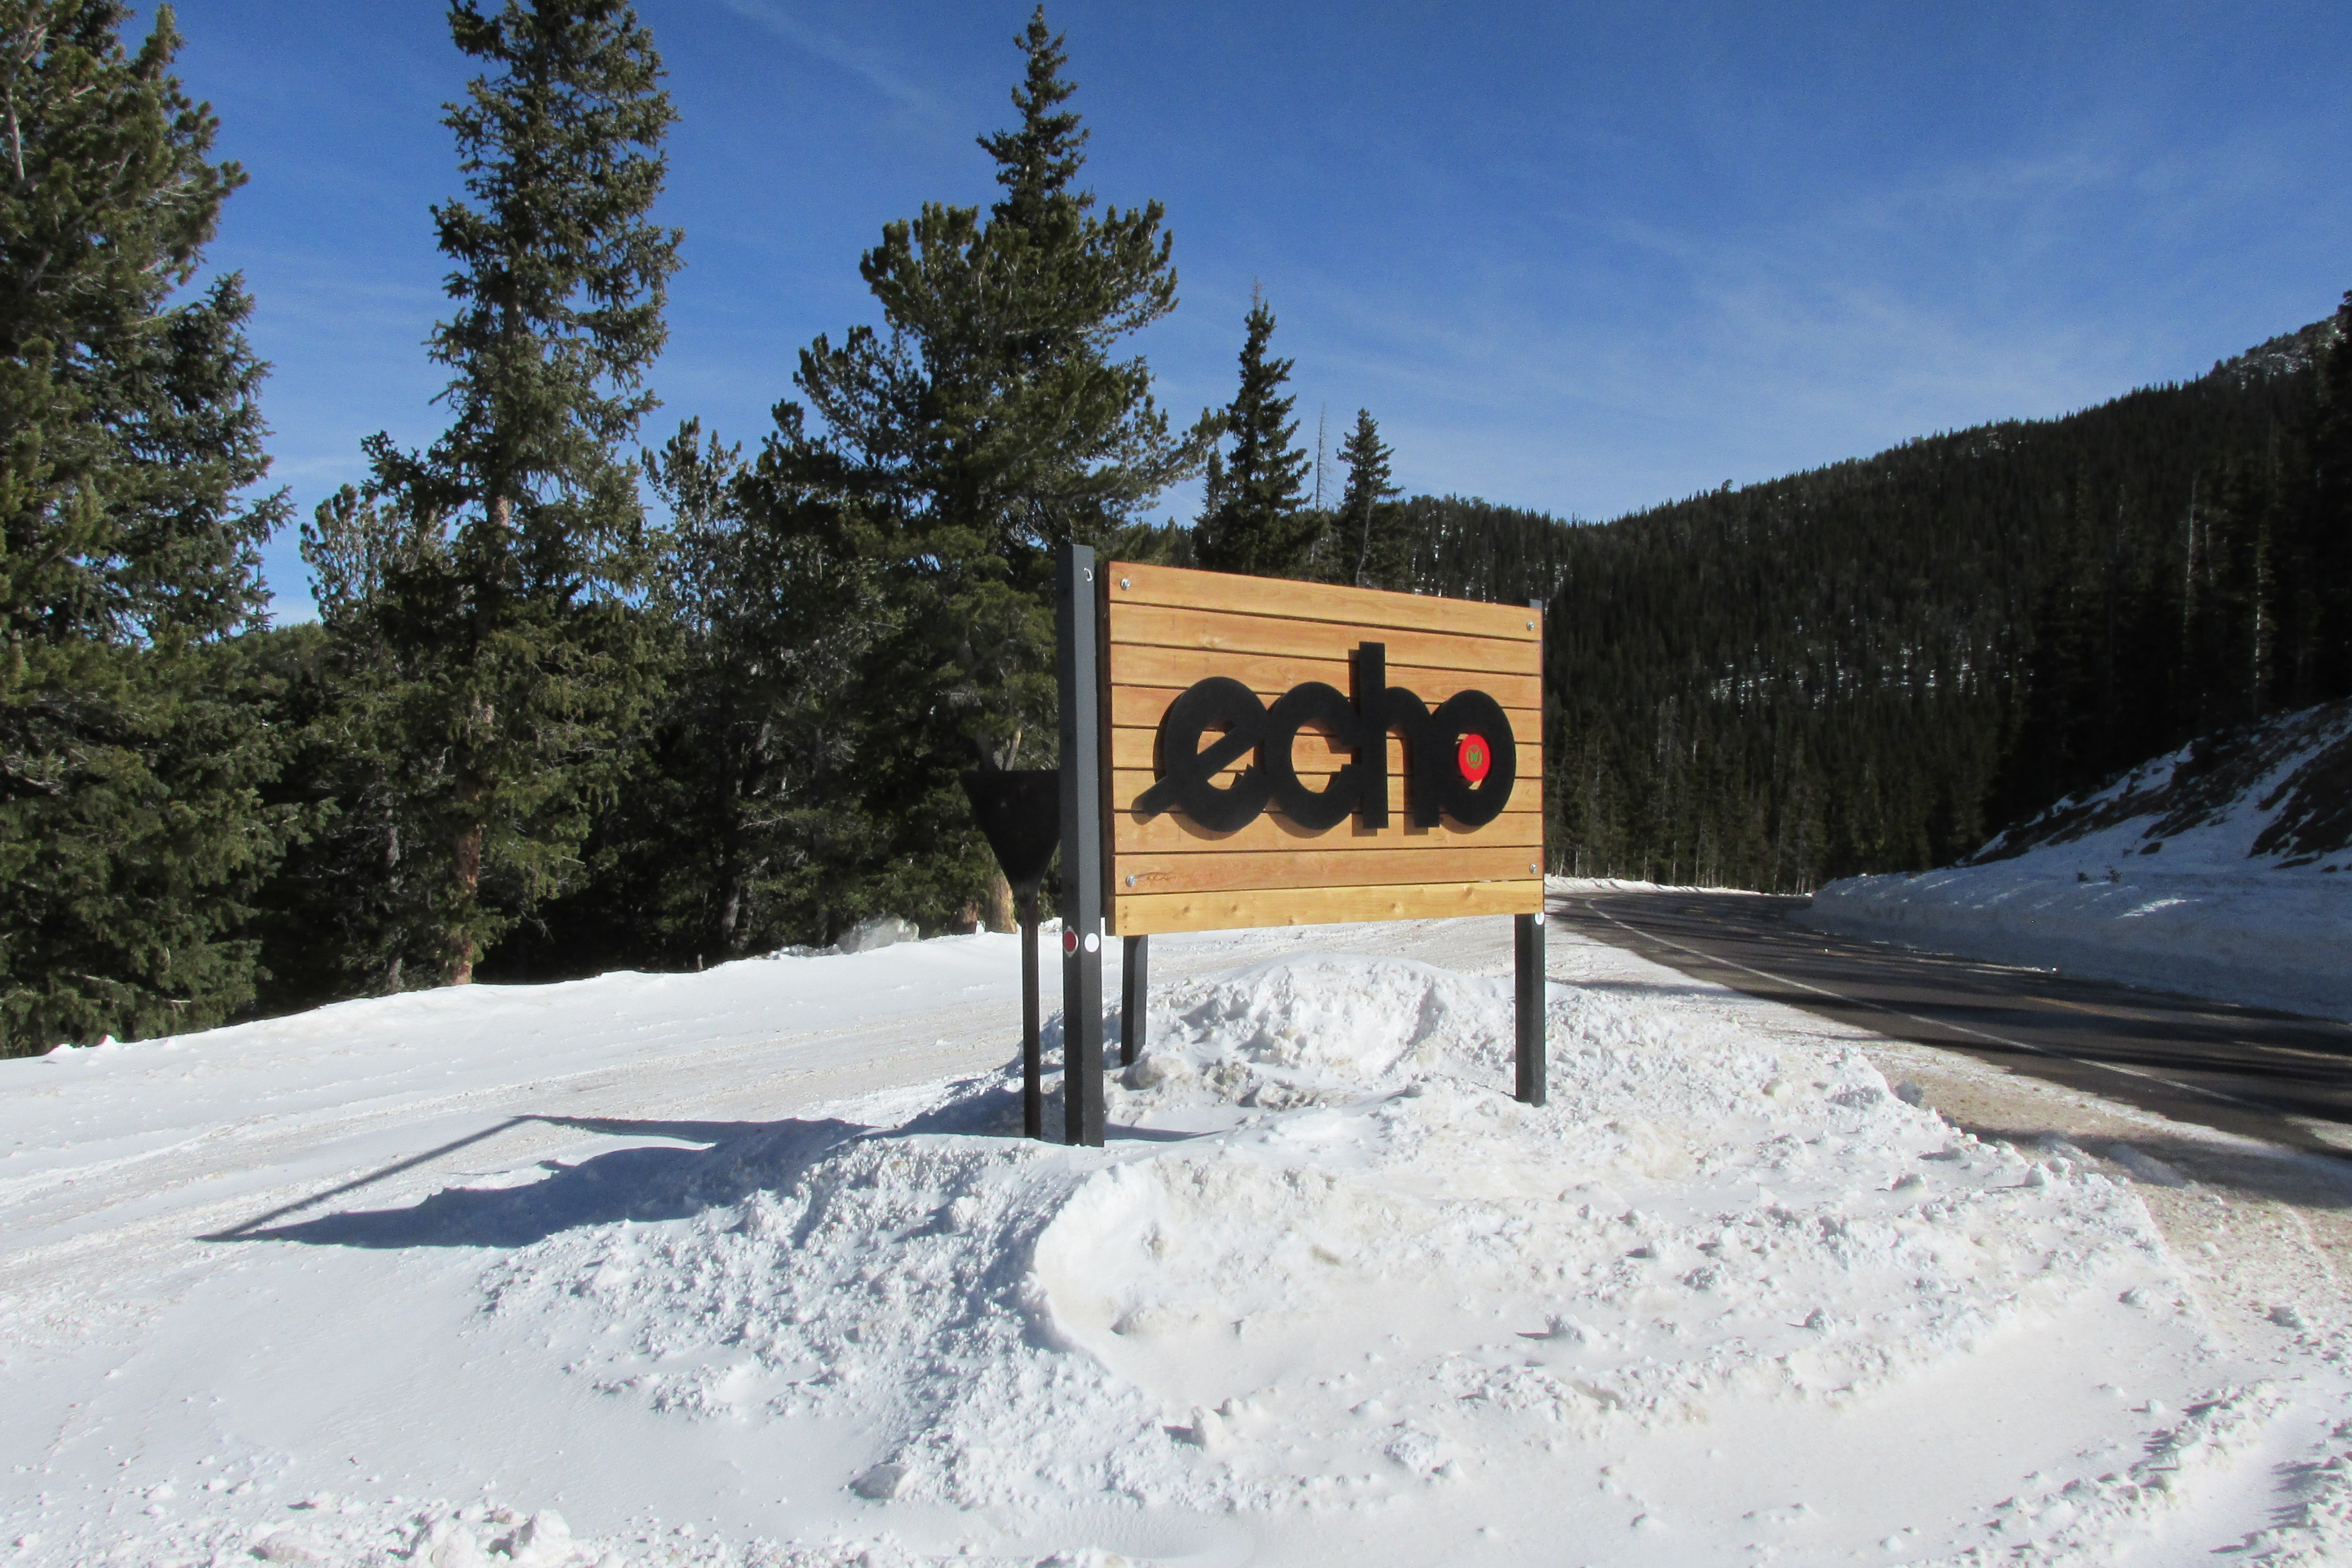 With new owner, Echo Mountain opens trails - BusinessDen